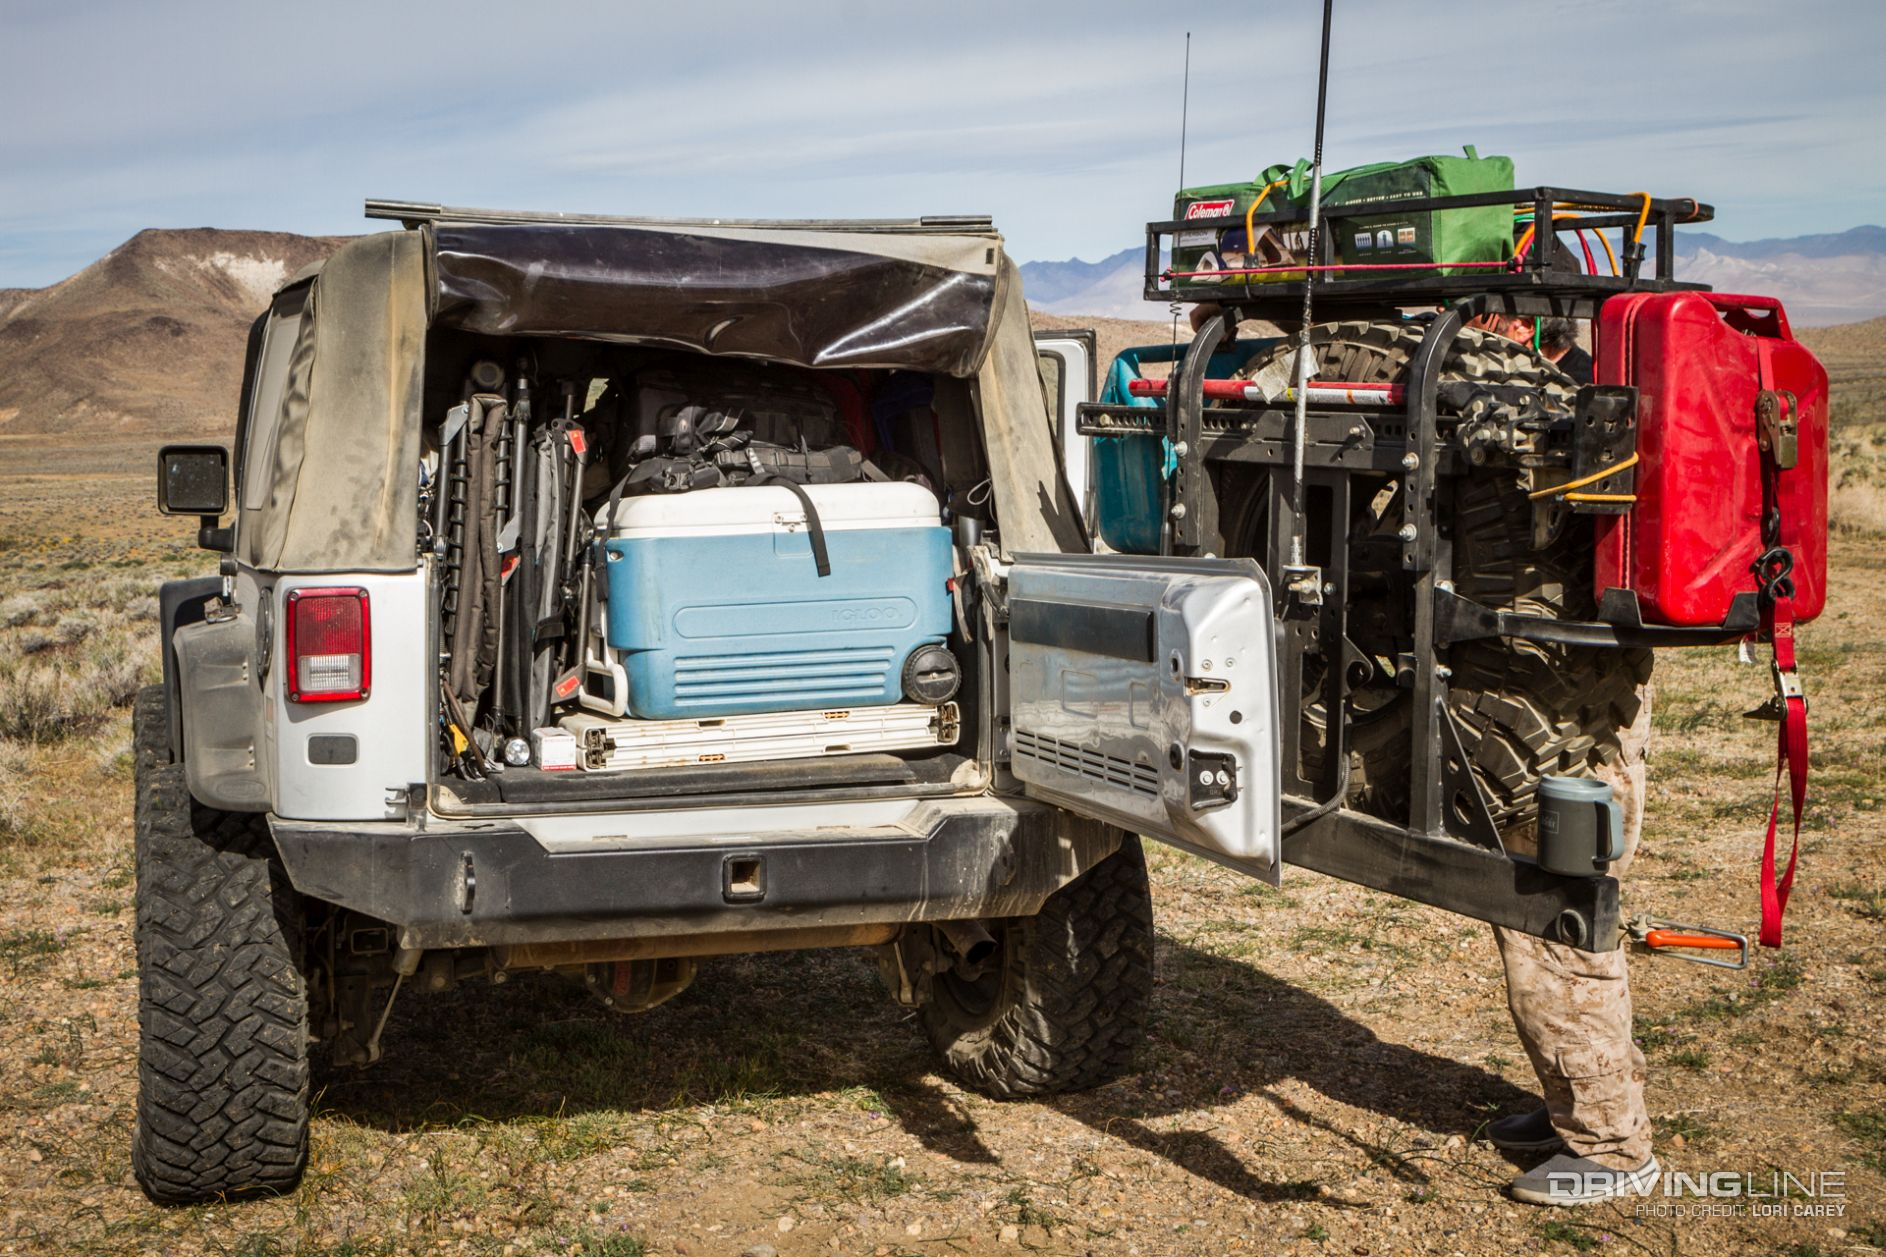 2016 Camper Van >> Pack Mule: How to Fit Overland Essentials in a Compact 4x4 | DrivingLine